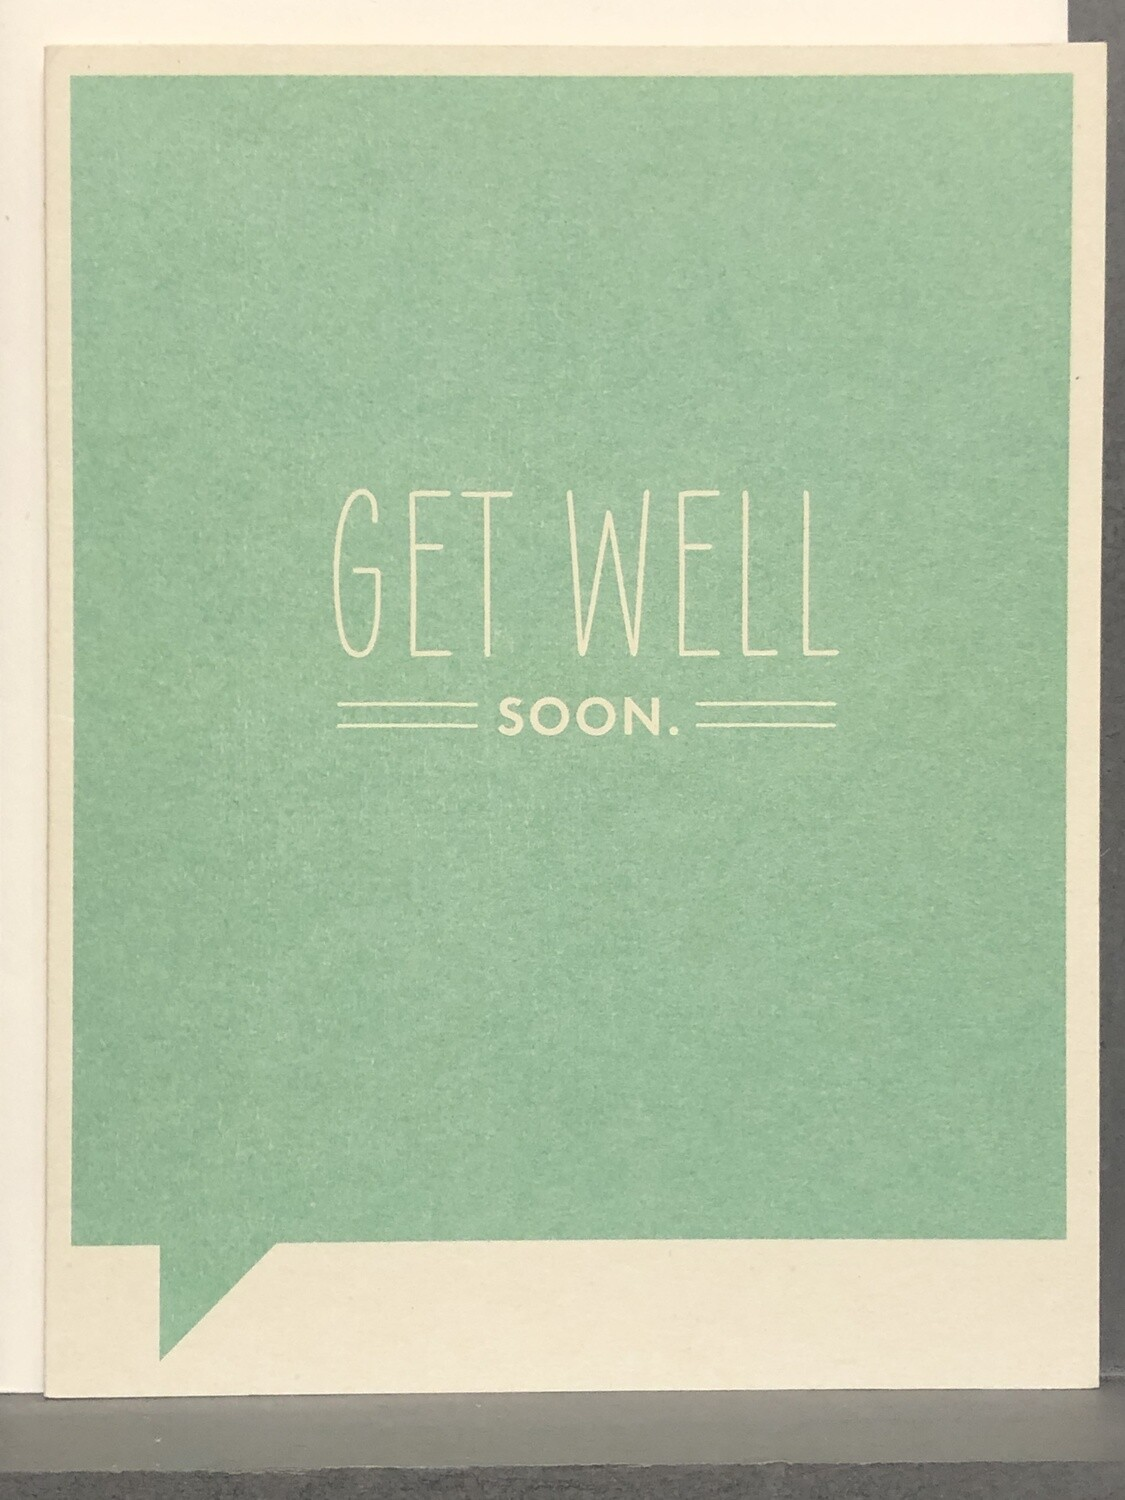 Get Well Body Parts